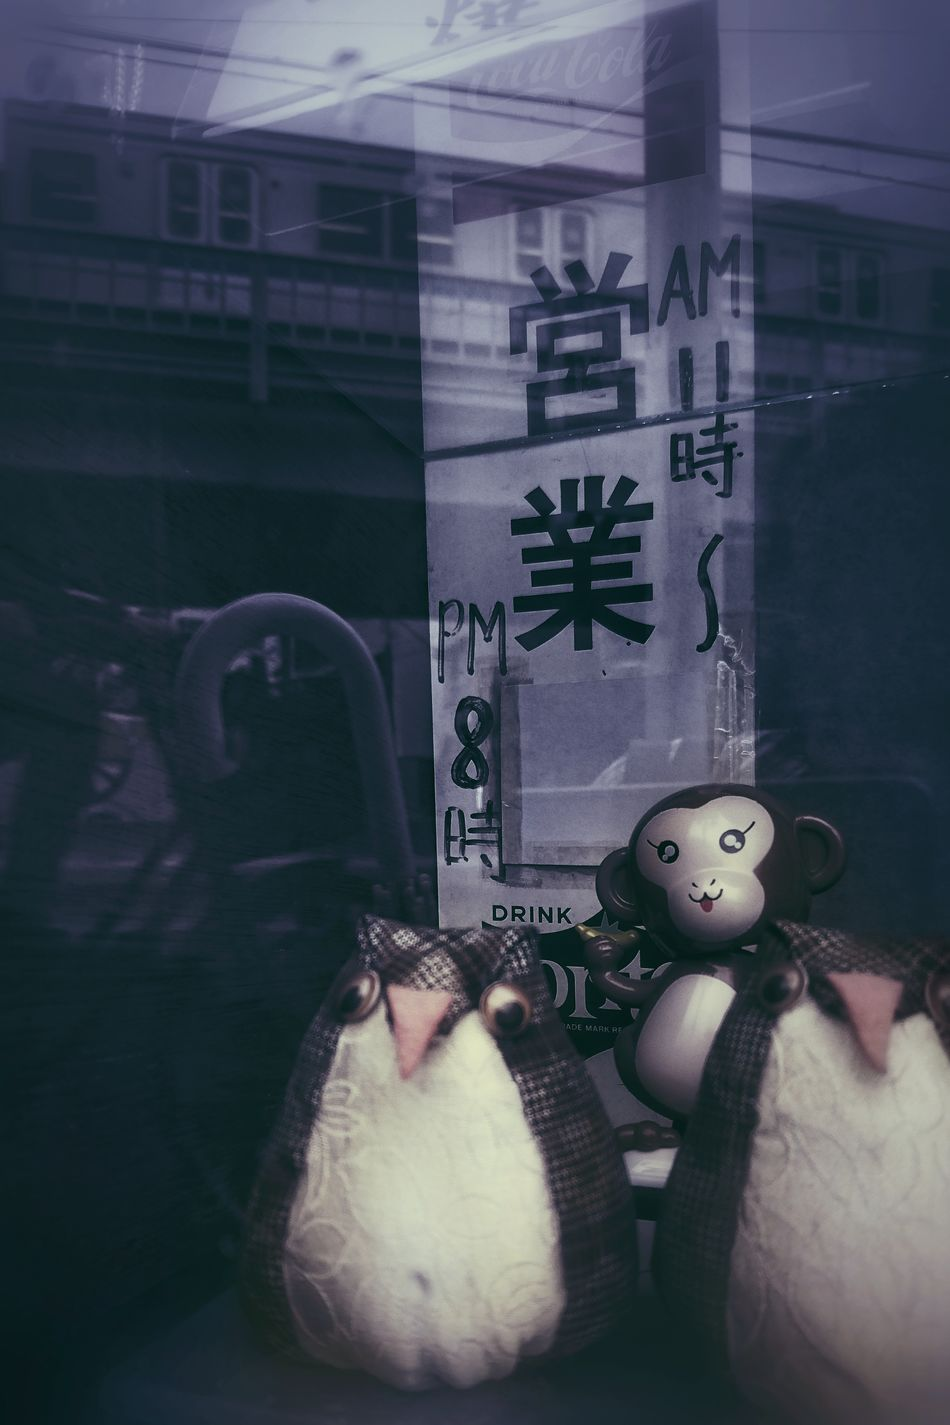 Toy Monkey Owls Soft Toys TOWNSCAPE Window Display Reflection Snapshot From My Point Of View Capture The Moment Lights And Shadows Multiple Layers Learn & Shoot: Layering Streetphotography Reflection_collection EyeEm Best Shots EyeEm Best Edits 日常 日常的風景 町の風景